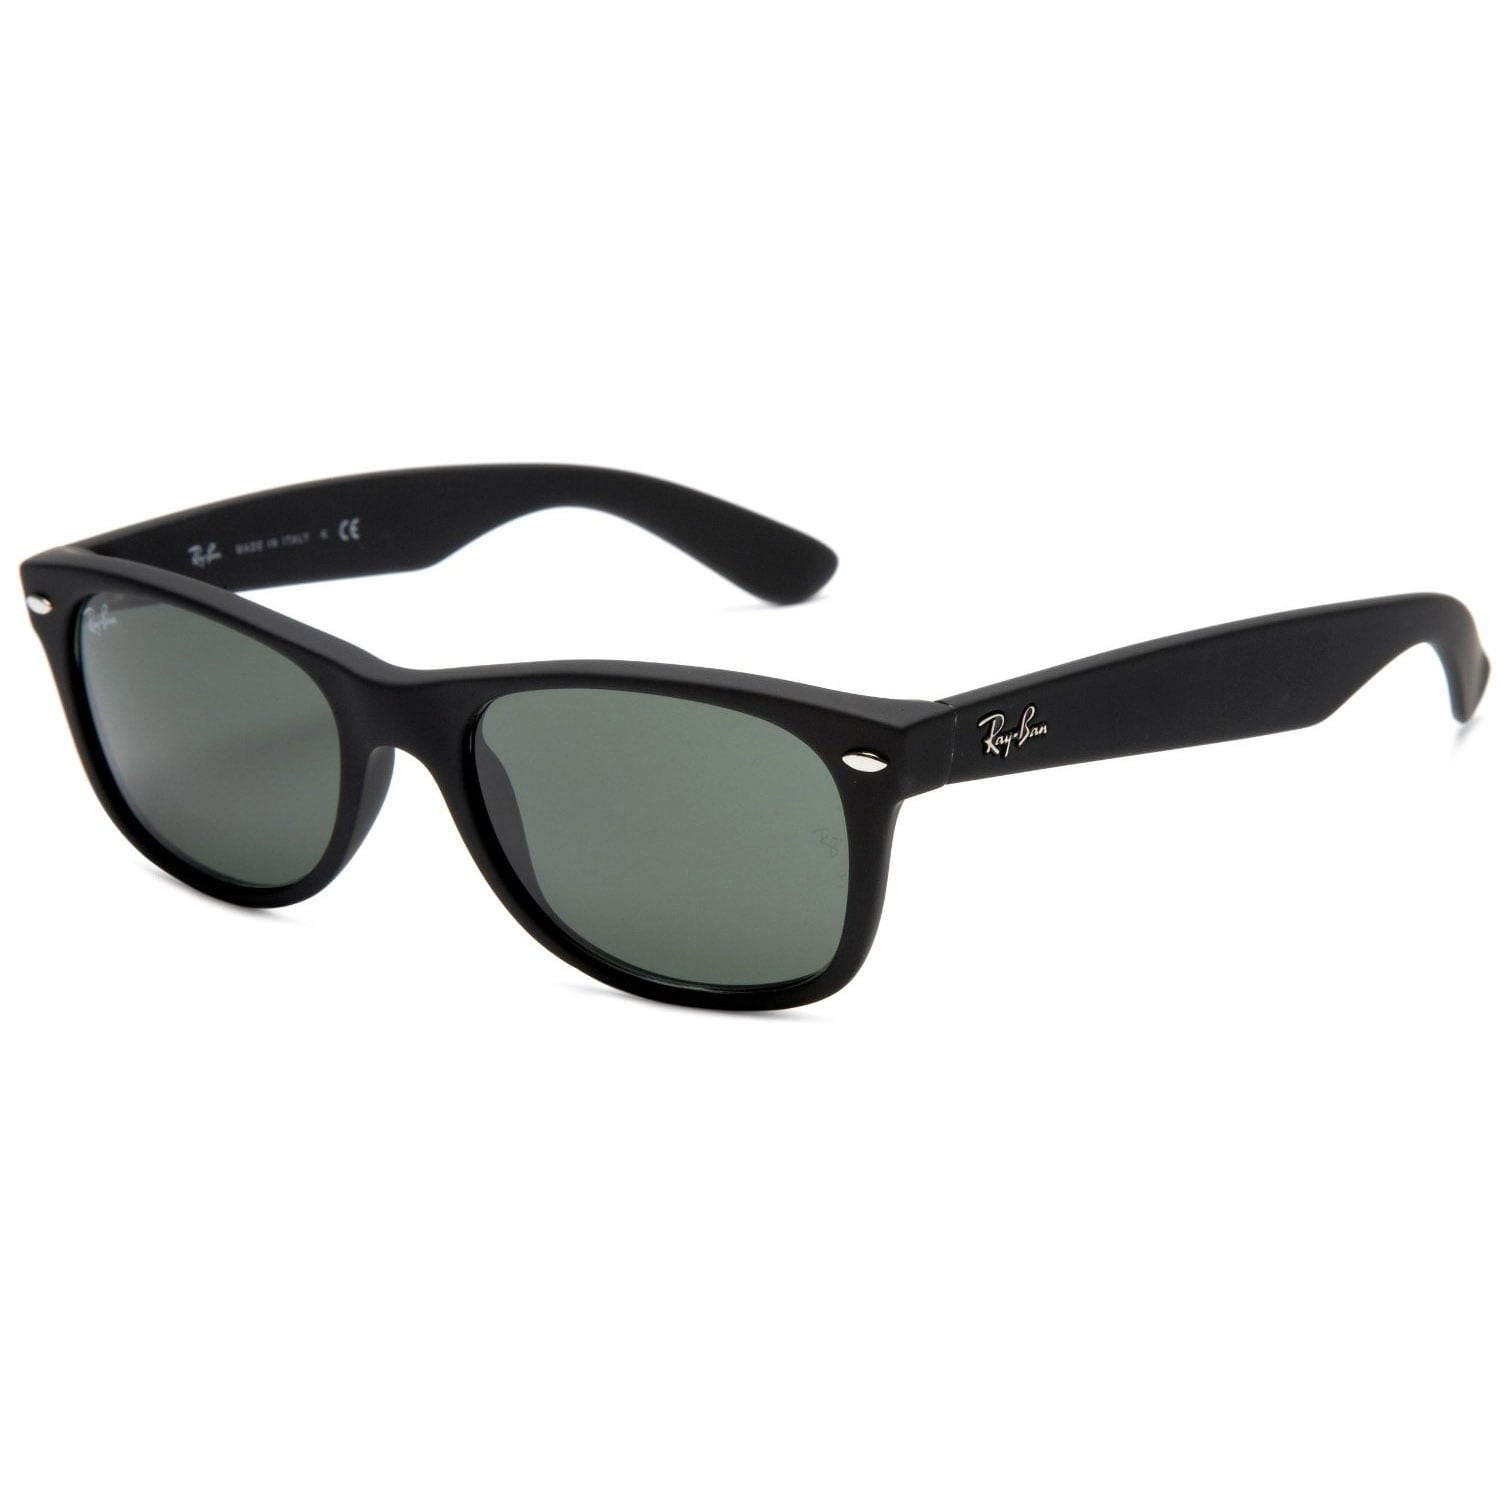 bcd8f00a3e1 Shop Ray-Ban Men s  RB2132  New Wayfarer Sunglasses - Free Shipping Today -  Overstock - 7031048